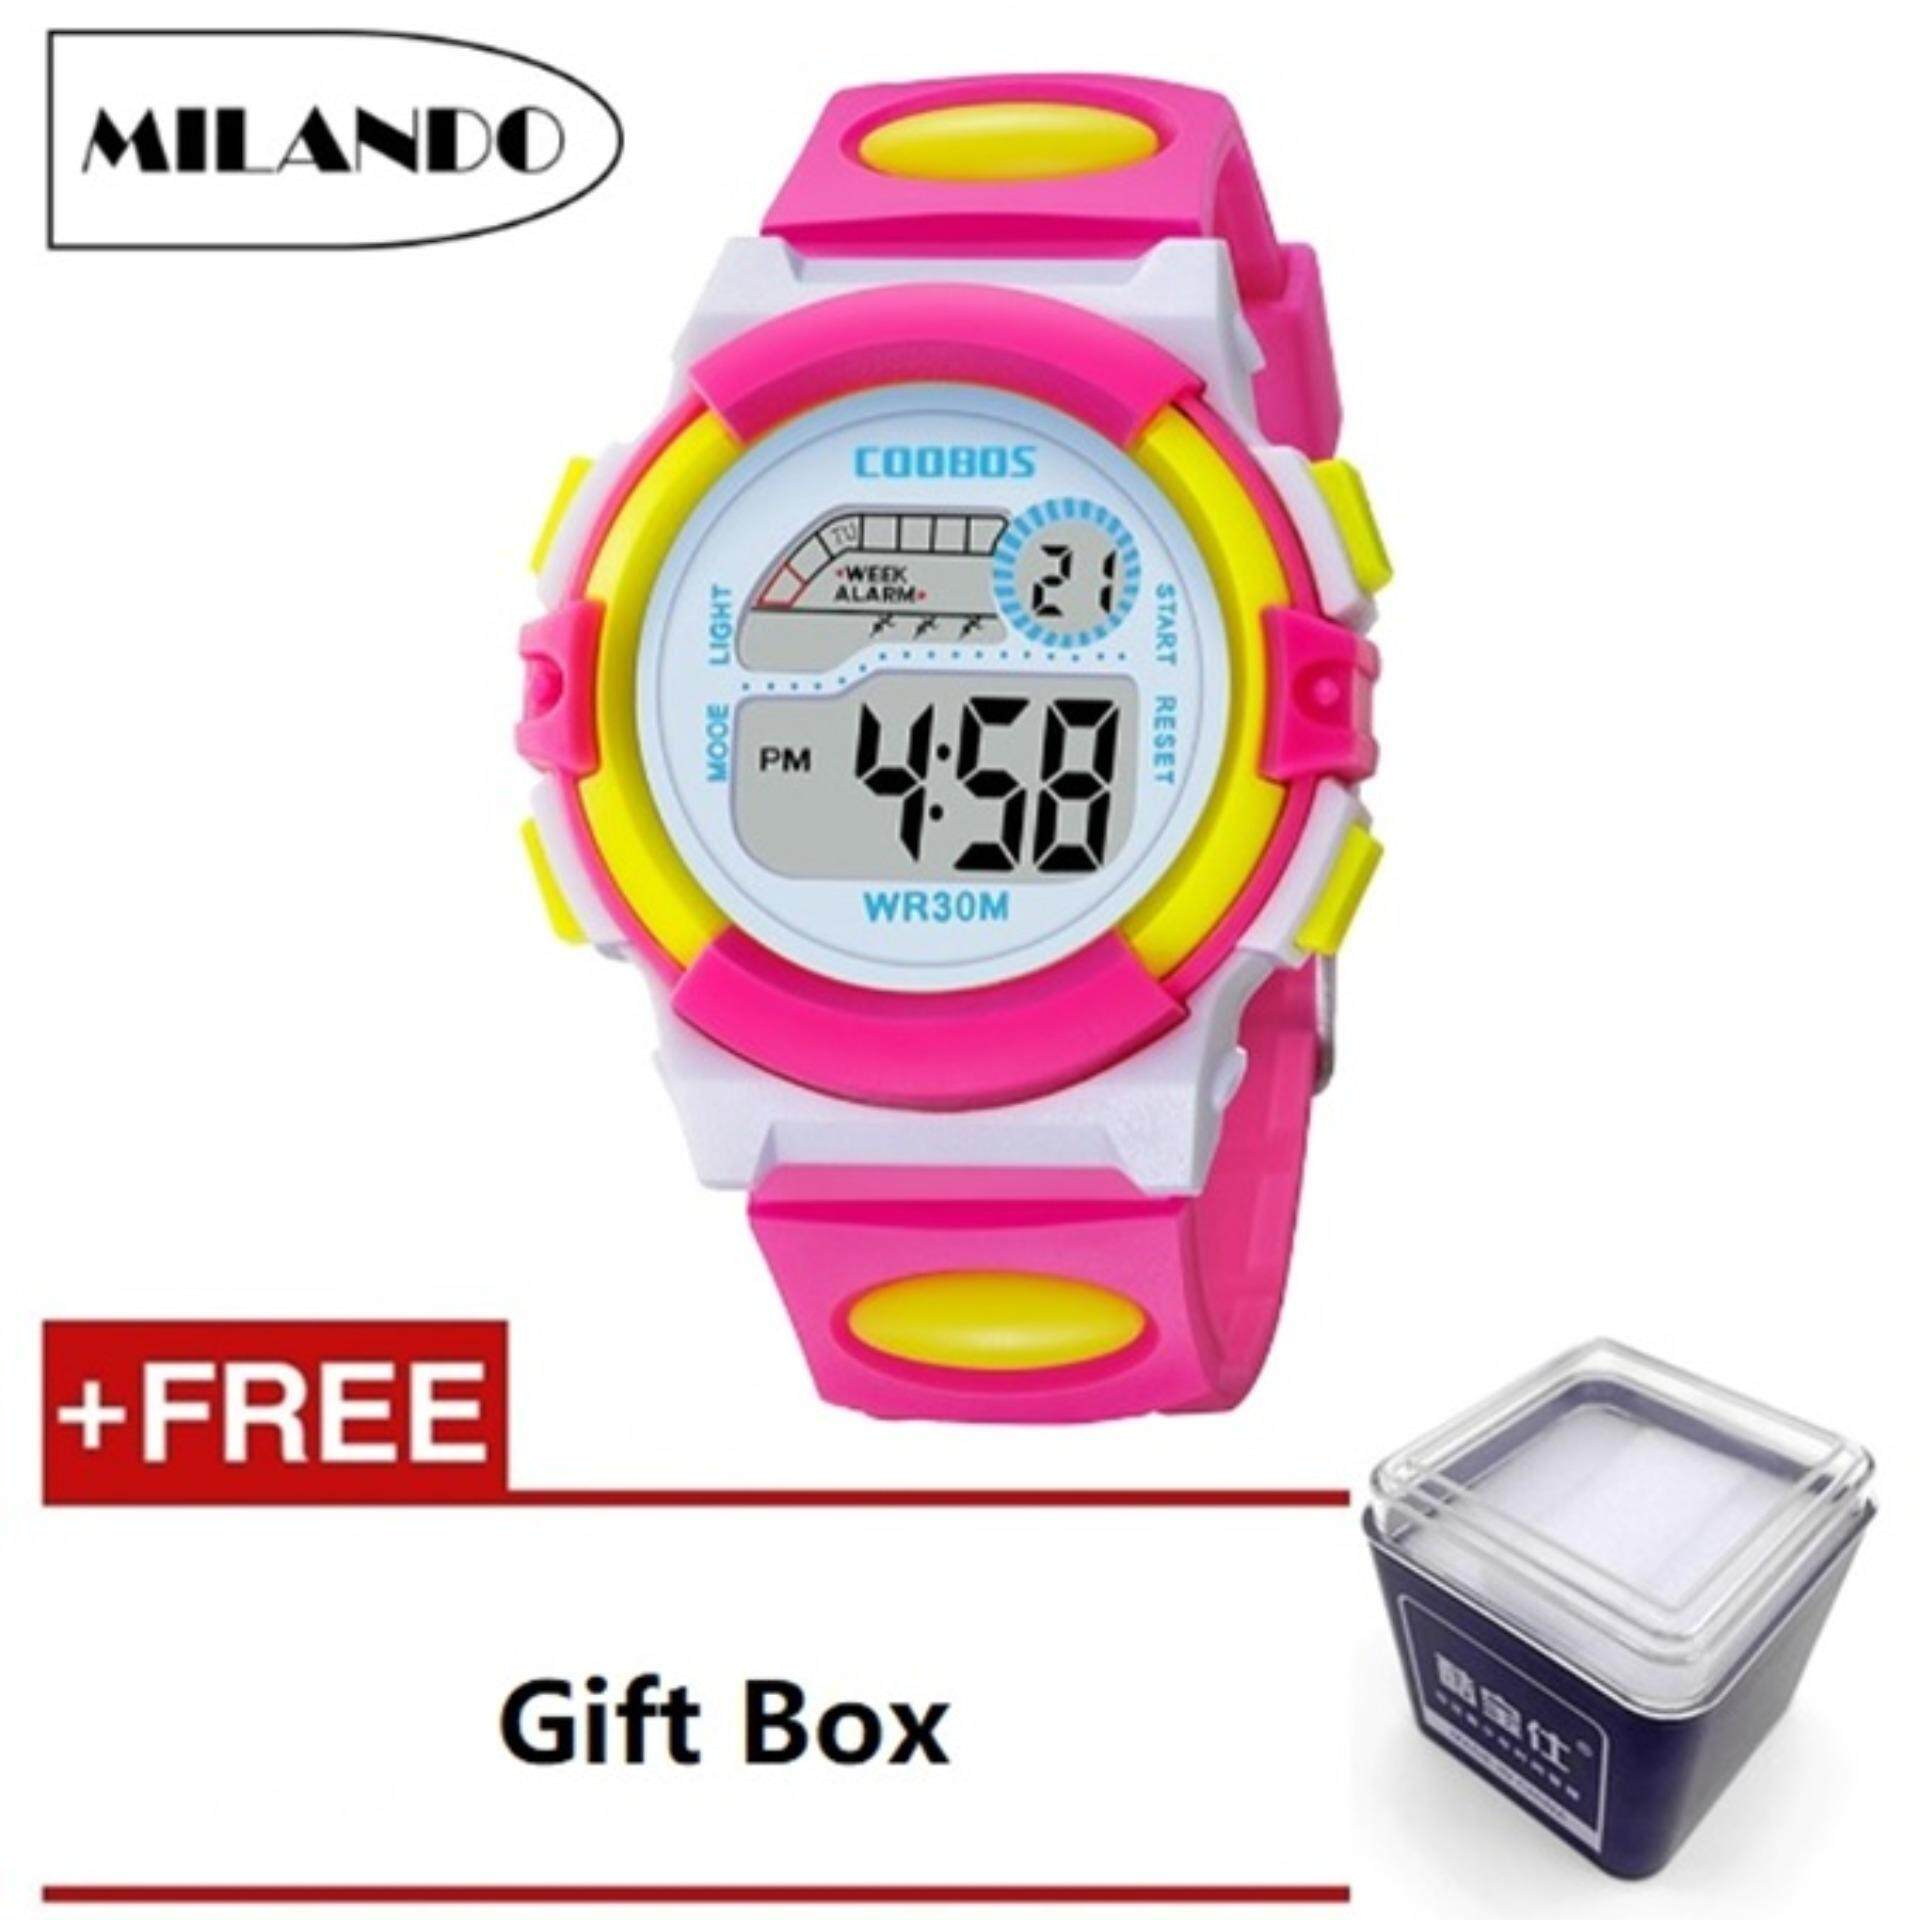 MILANDO Children watches LED Digital Multifunctional 30M Waterproof Outdoor Sports Watch FREE GIFT BOX (Type 1) Malaysia